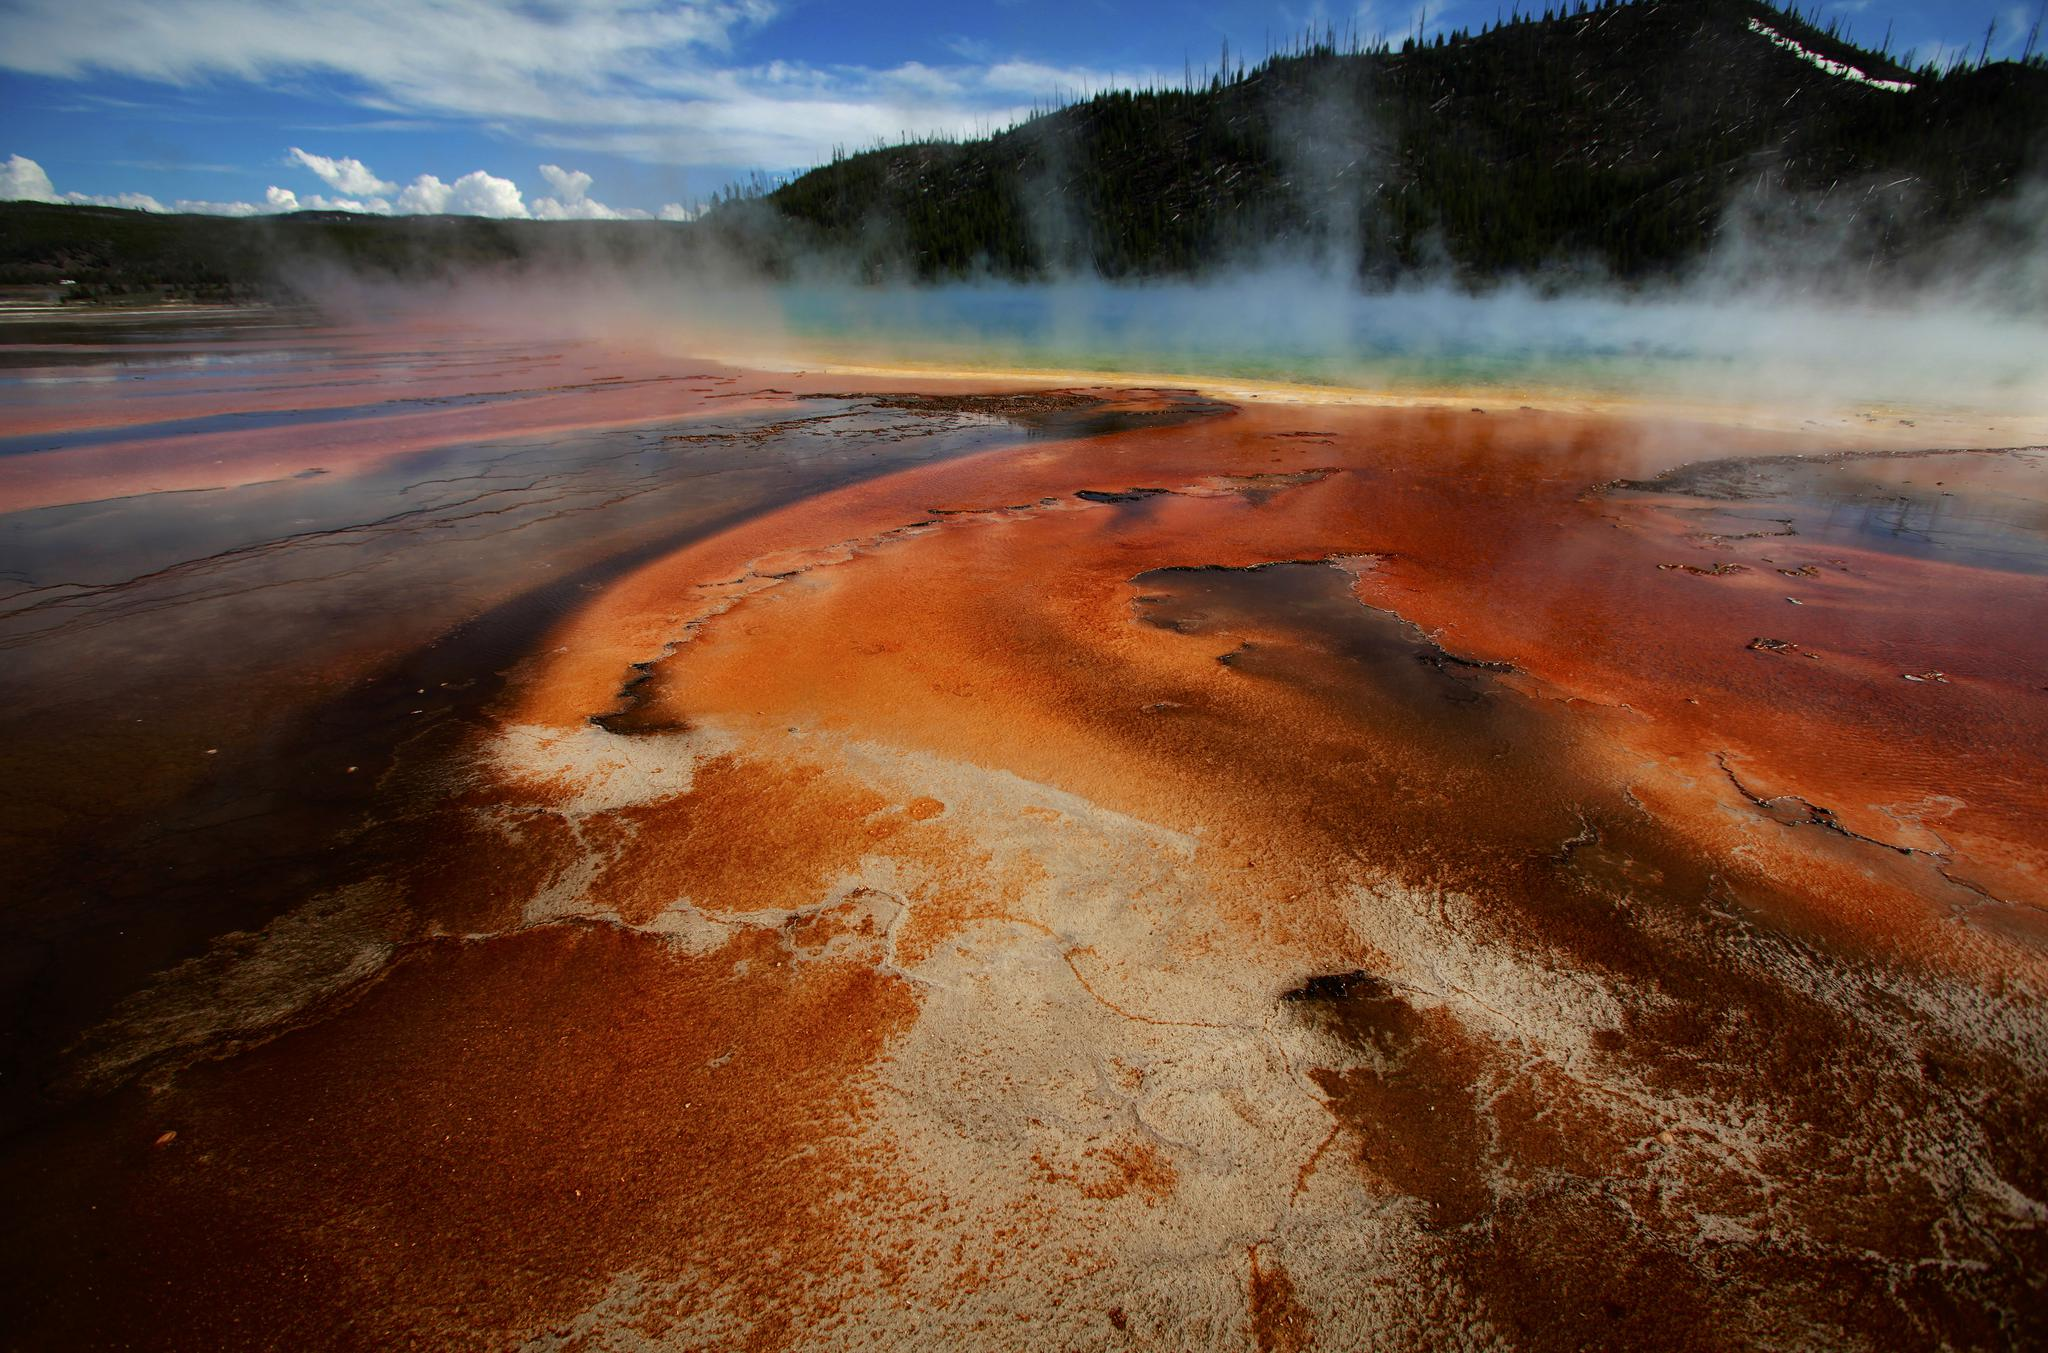 The colored bacteria and microbial mat of Grand Prismatic Spring, the largest in the United States and third largest in the world, in Yellowstone National Park, Wyoming, on June 22, 2011.